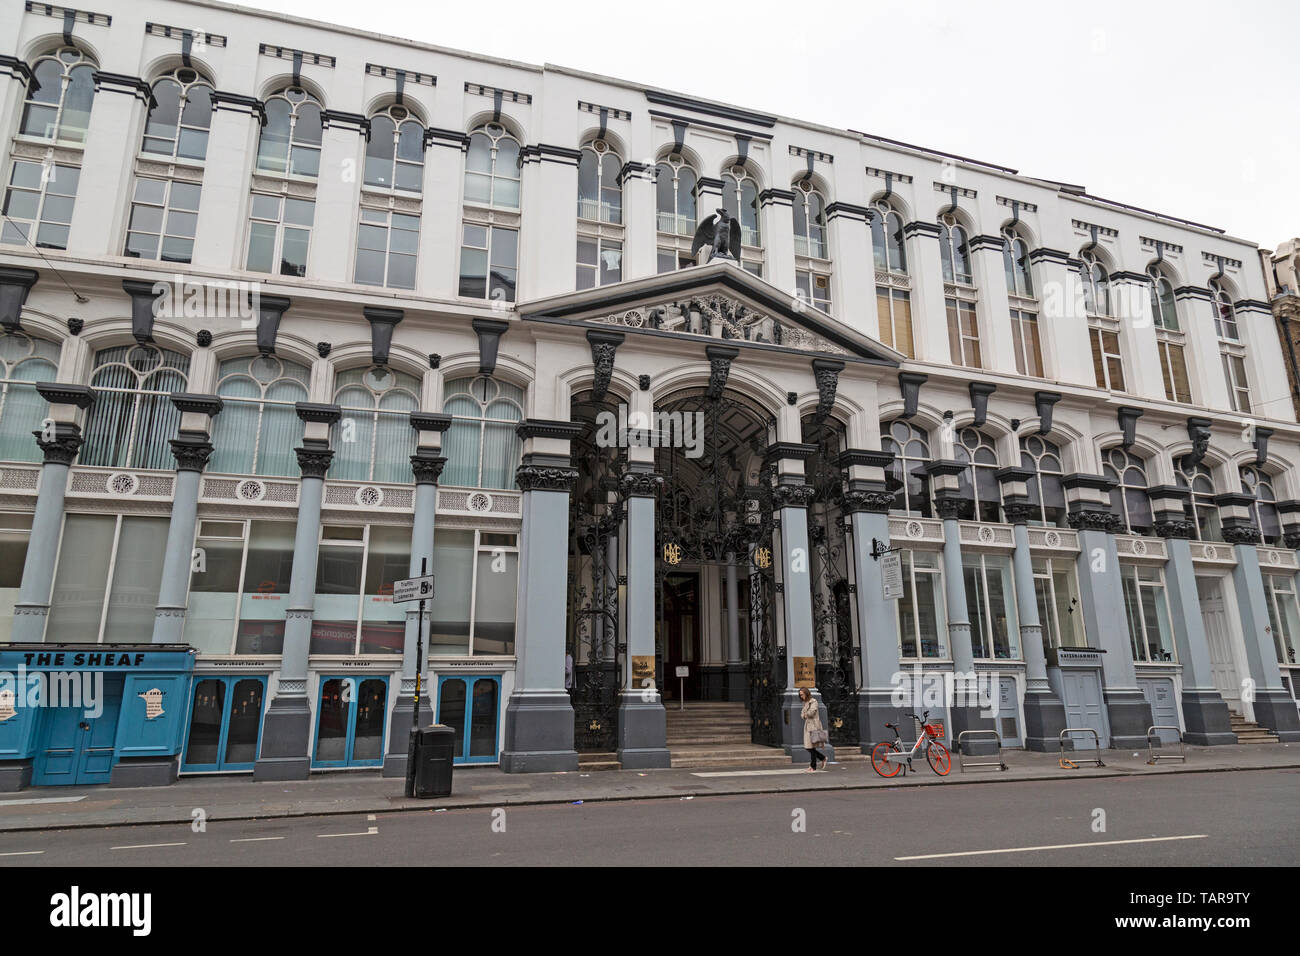 The Hop Exchange is a Grade II listed building at No. 24 Southwark Street, London, in the Bankside area of the London Borough of Southwark. Open 1867. - Stock Image